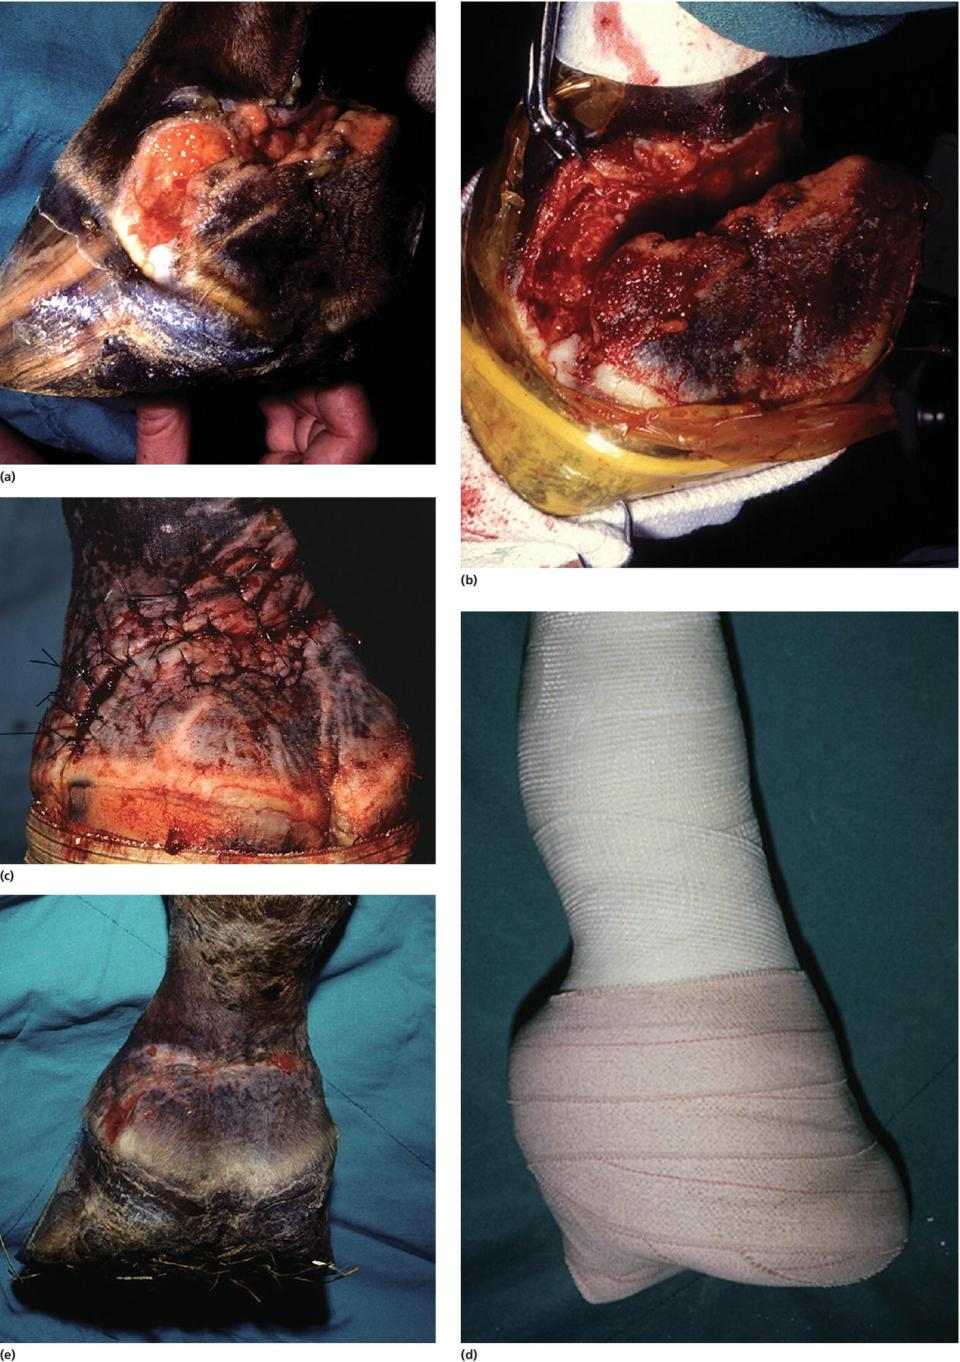 5 Photos of a wound on a horse after 5 days of treatment. They display healthy, granulation tissue; excessive granulation tissue excised; sutures used; a distal limb cast; and healing after removal of cast.